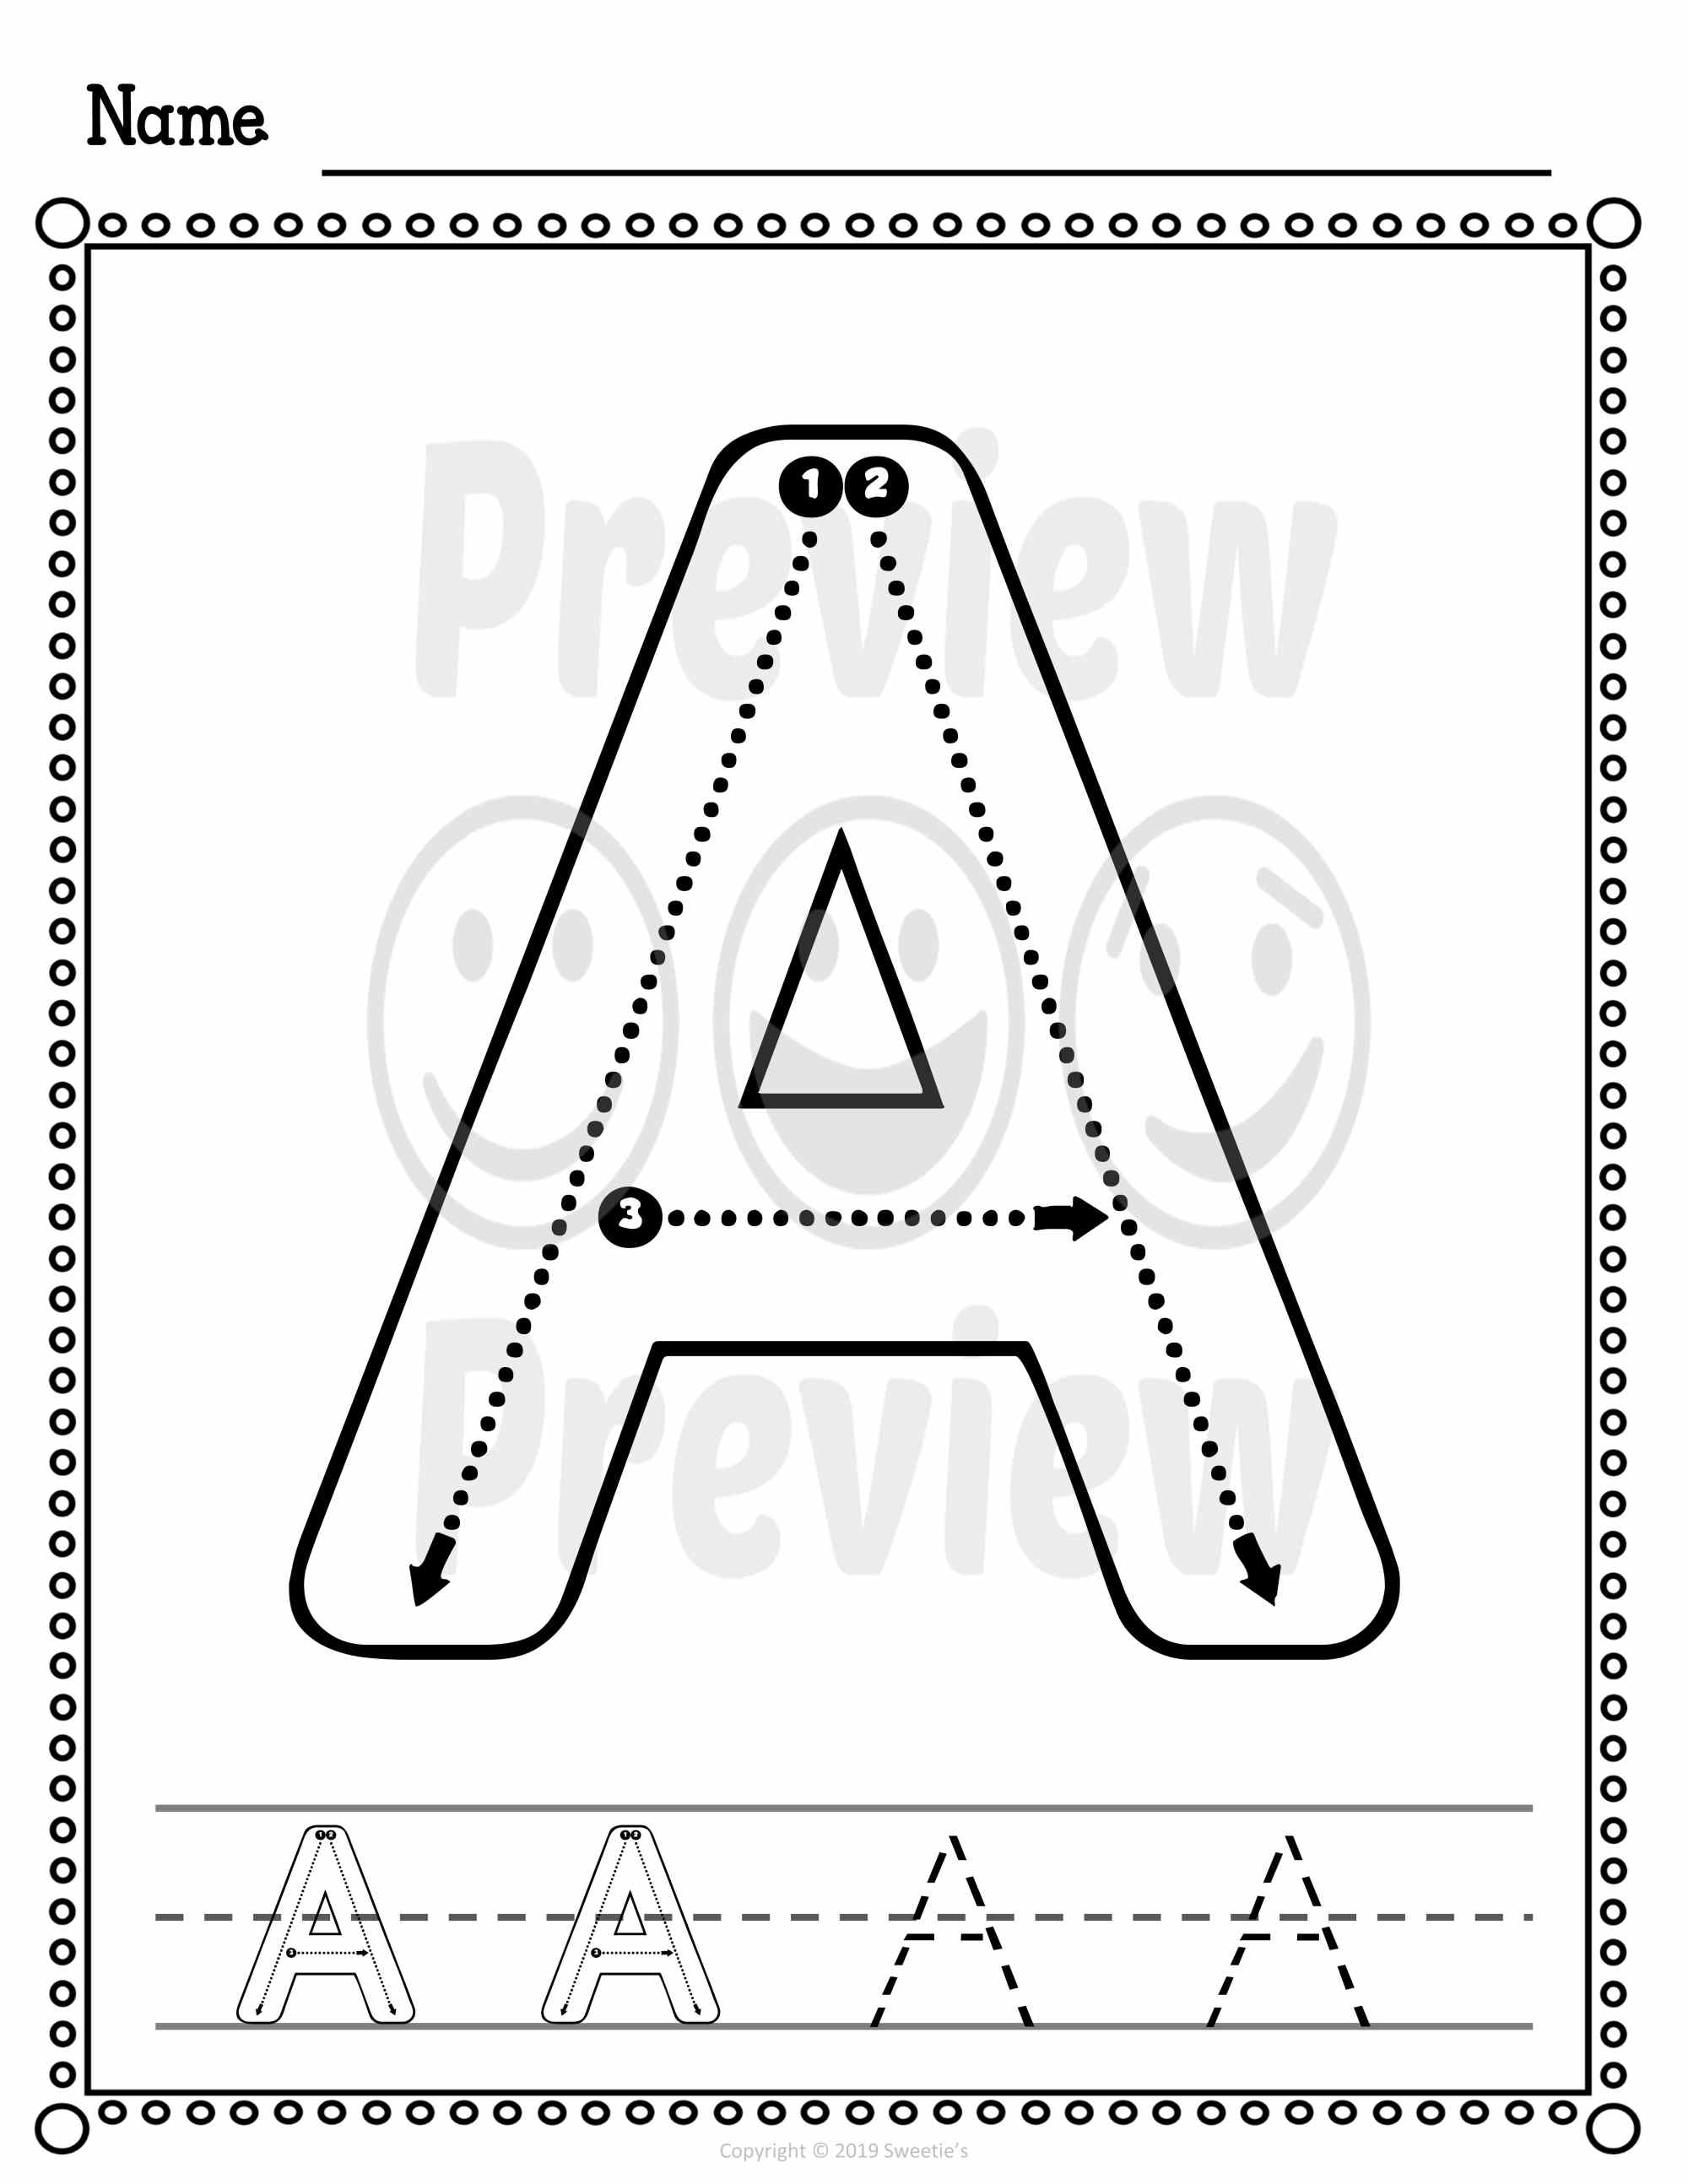 hight resolution of Alphabet and Number Worksheets Correct Letter Formation - Made By Teachers